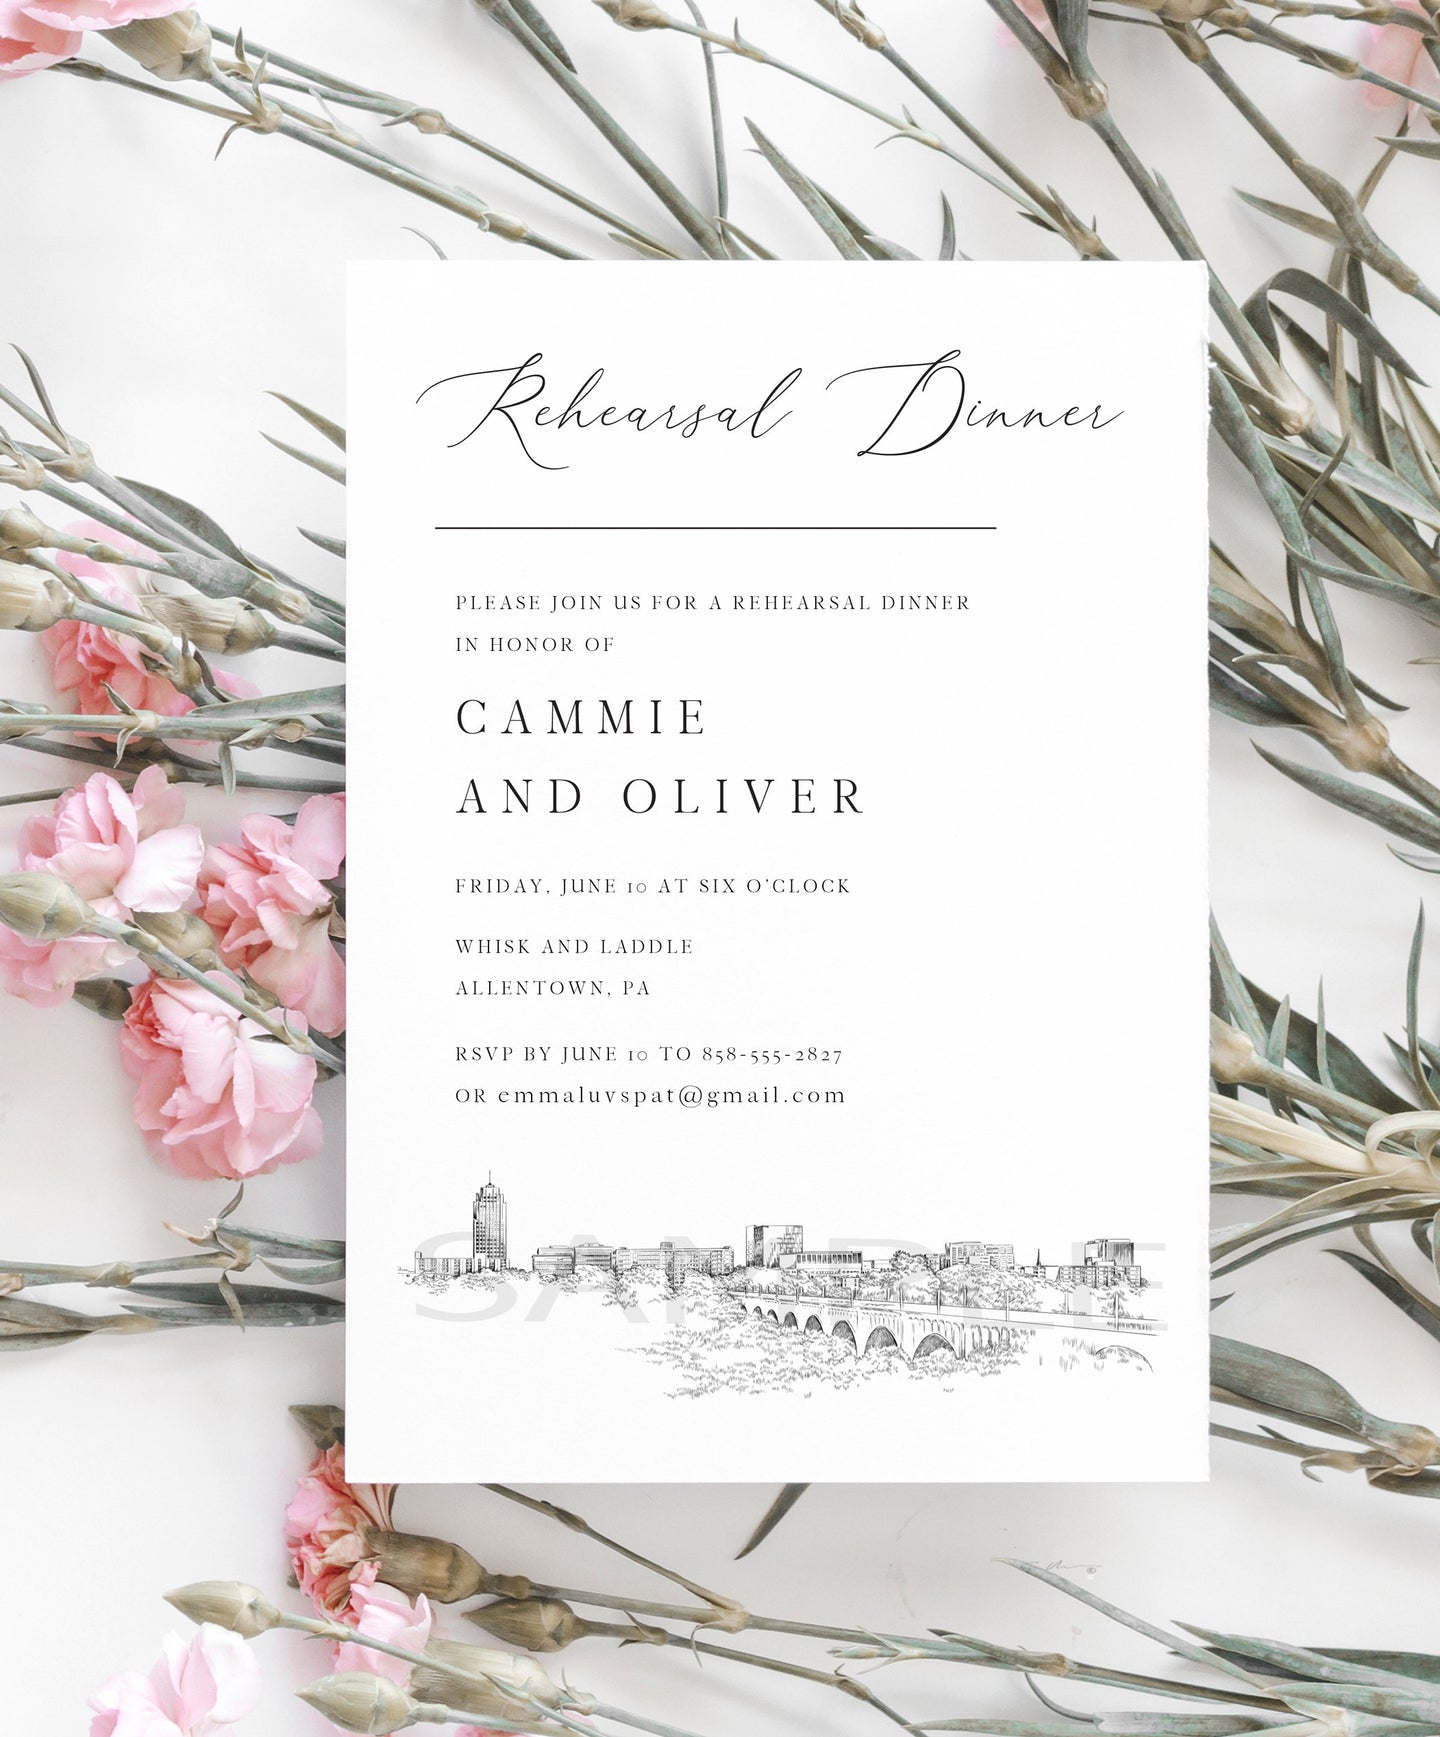 Rehearsal Dinner Invitations Allentown, PA, Pennsylvania, wedding, pa wedding, Weddings, Rehearse, Invite (set of 25 cards)